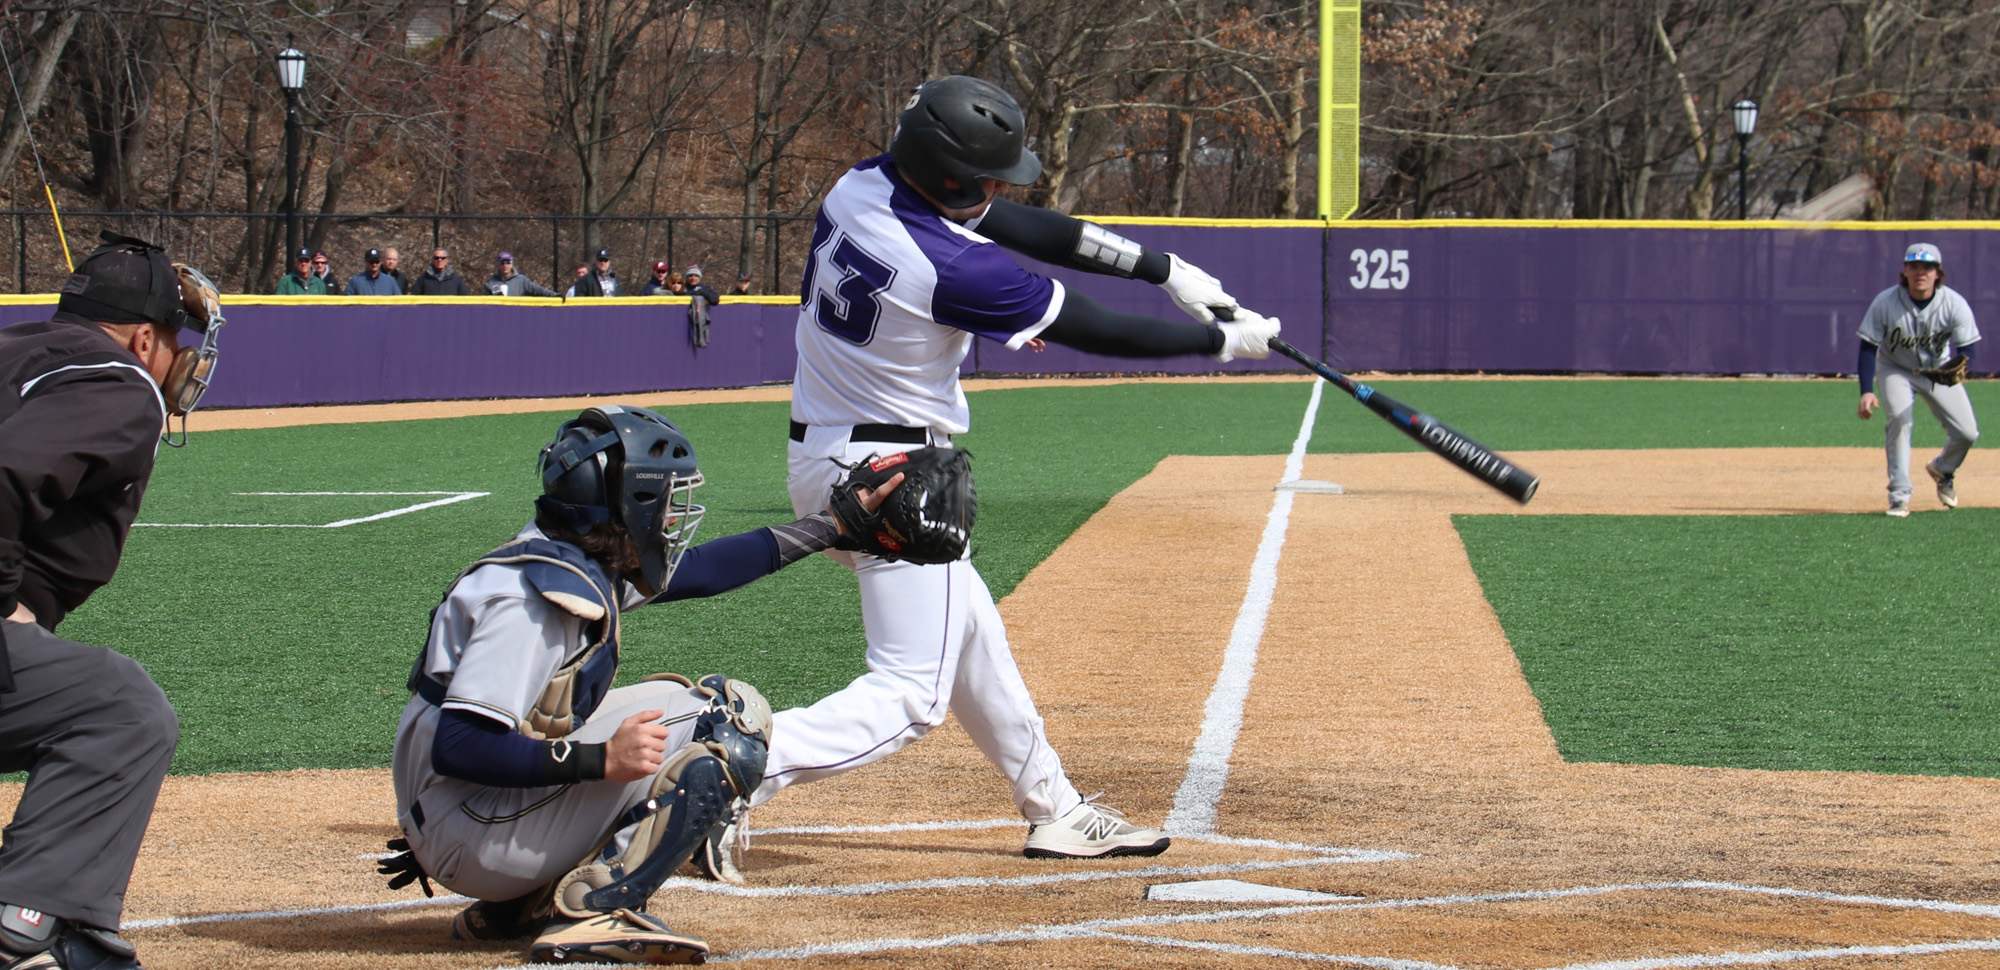 Senior Ian McIntosh led all players with three hits on Sunday night and collected his 100th career with a fourth-inning single in Scranton's win over Elizabethtown. © Photo by Timothy R. Dougherty / doubleeaglephotography.com